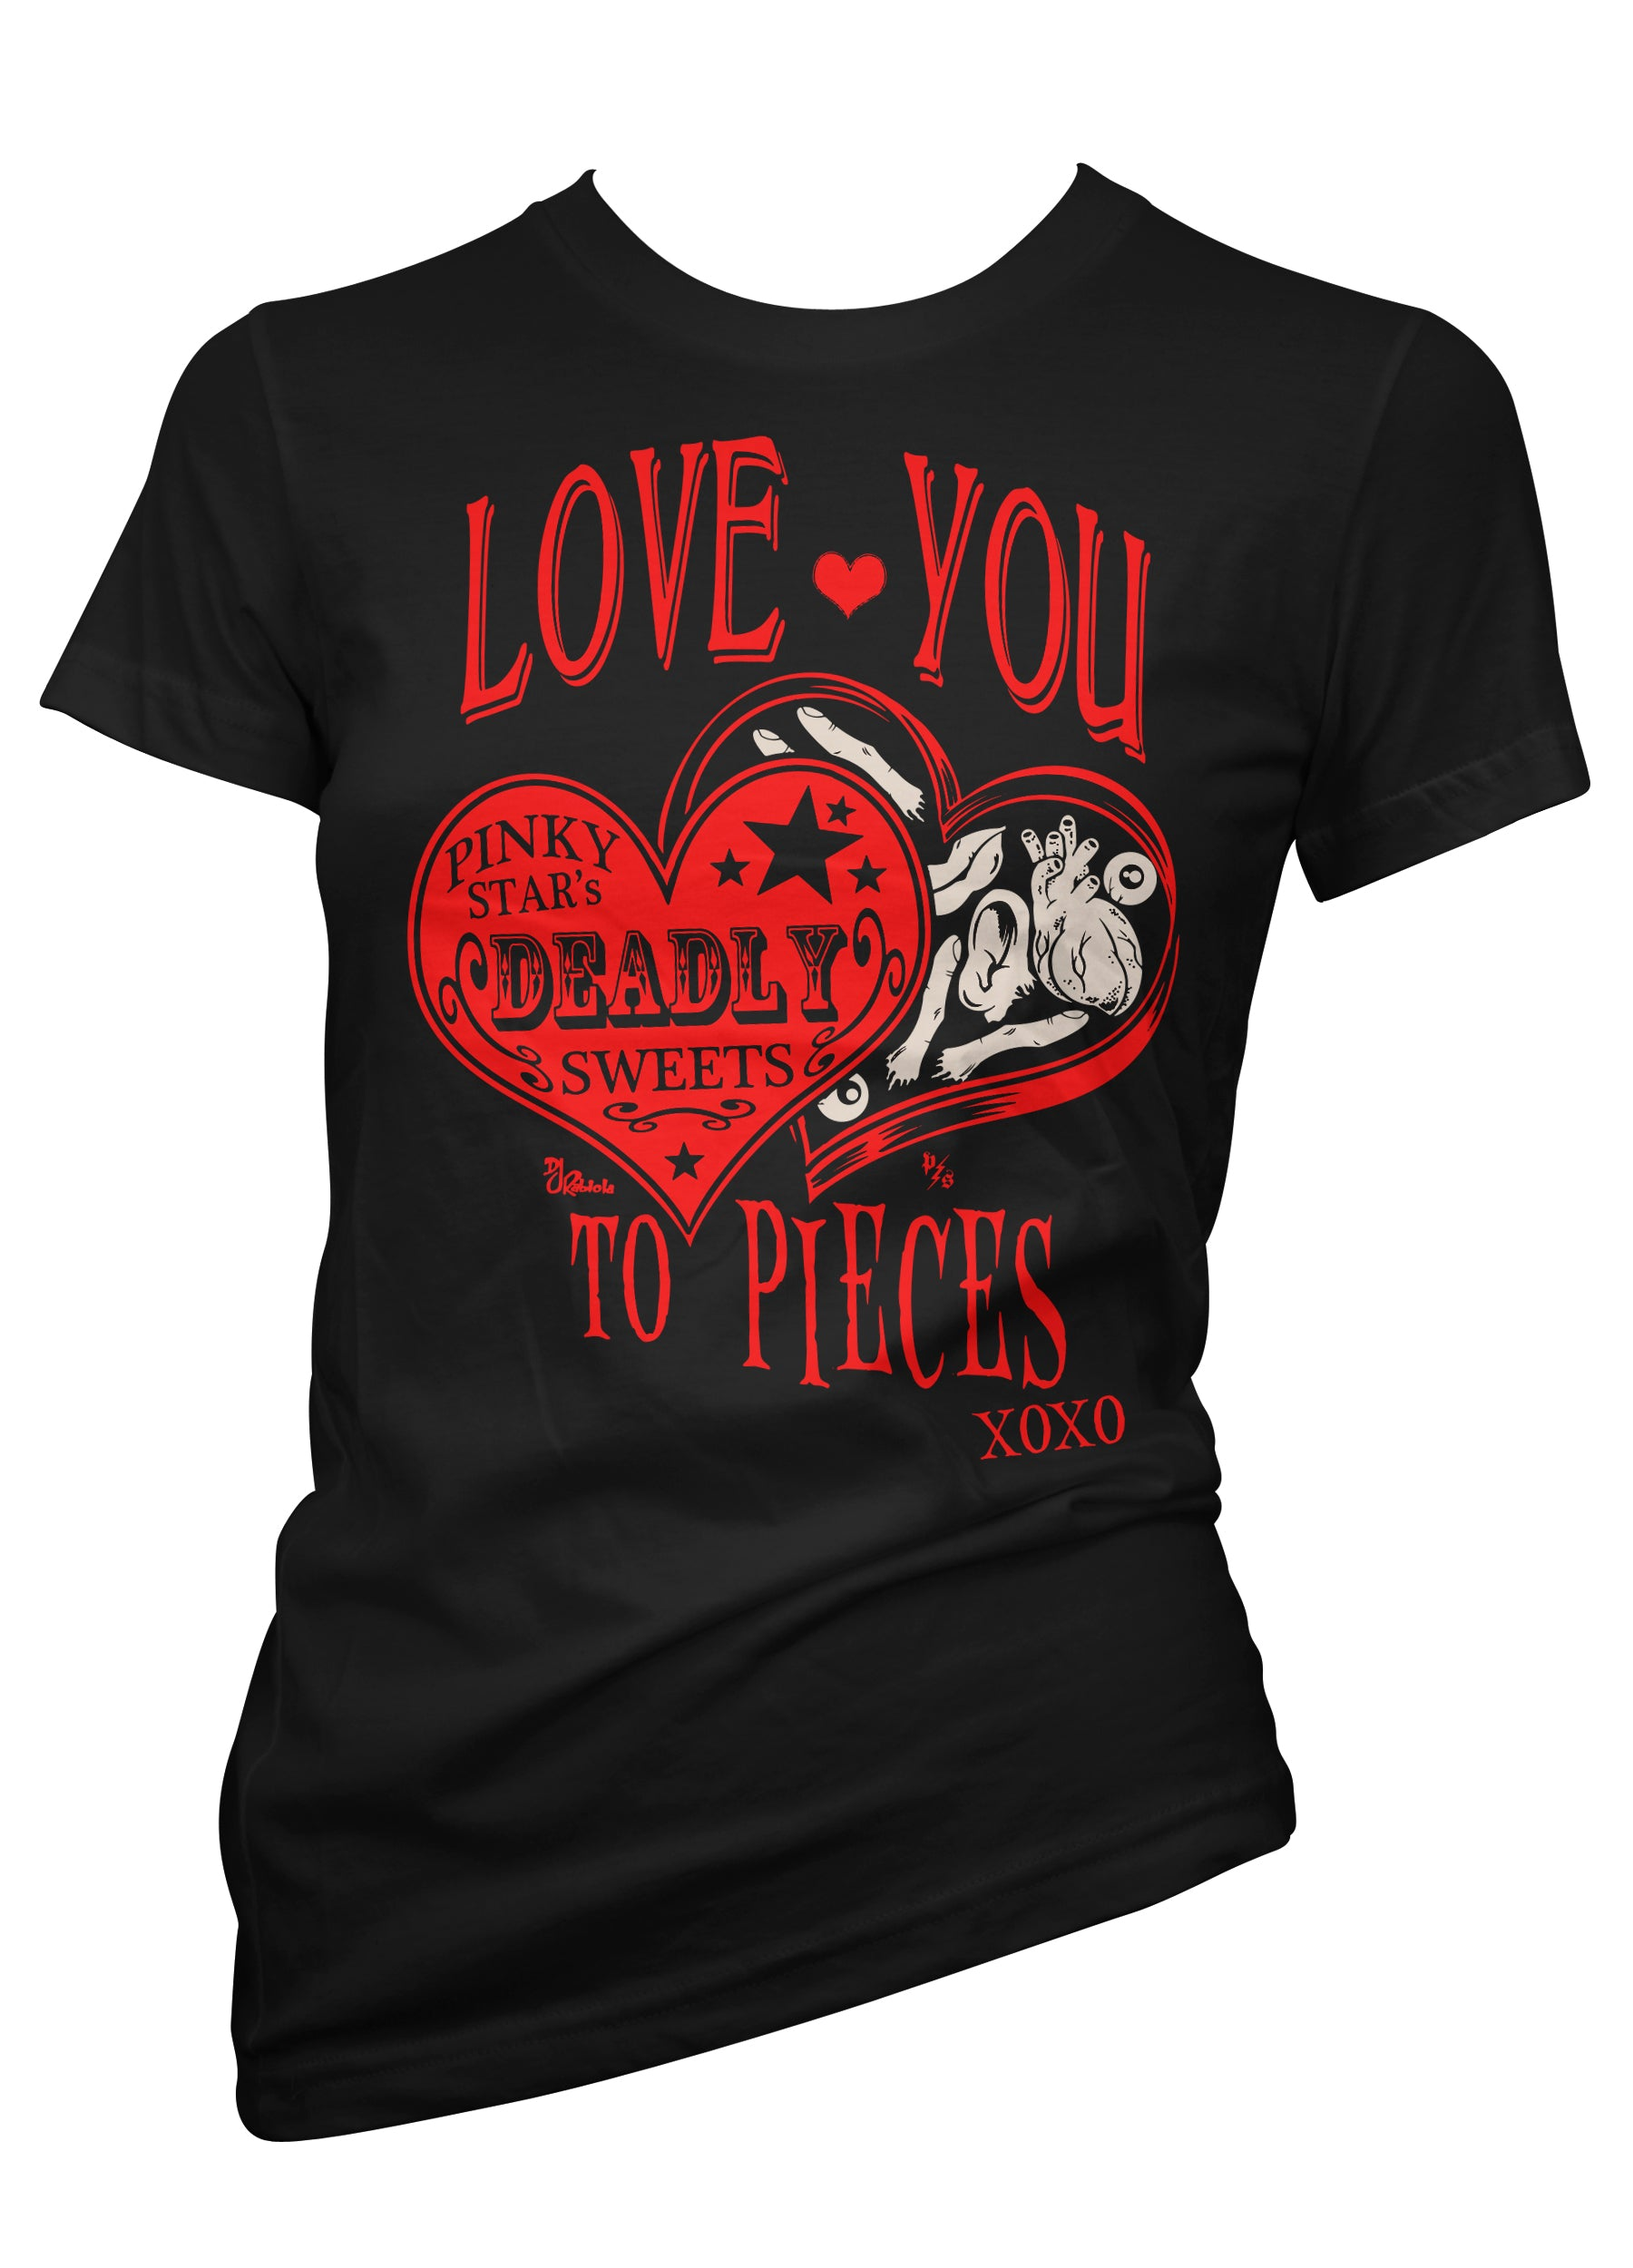 love you to pieces deadly treats candy - pinky star